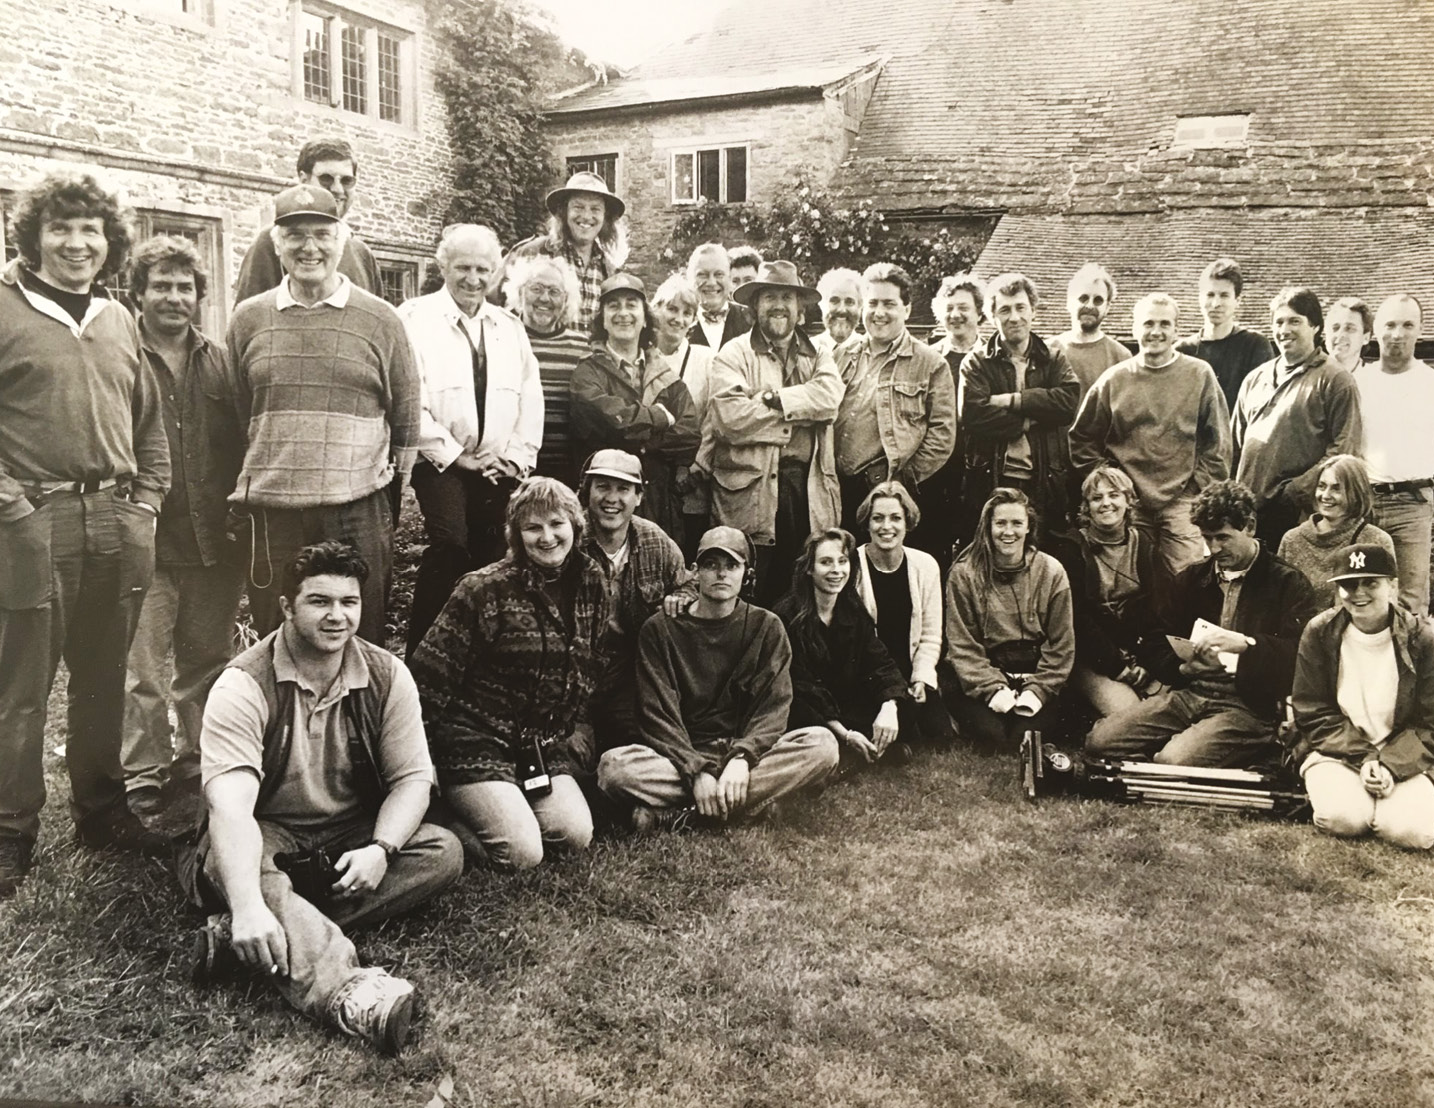 below A group shot of the excavation team and production crew, taken early in Time Team's history.